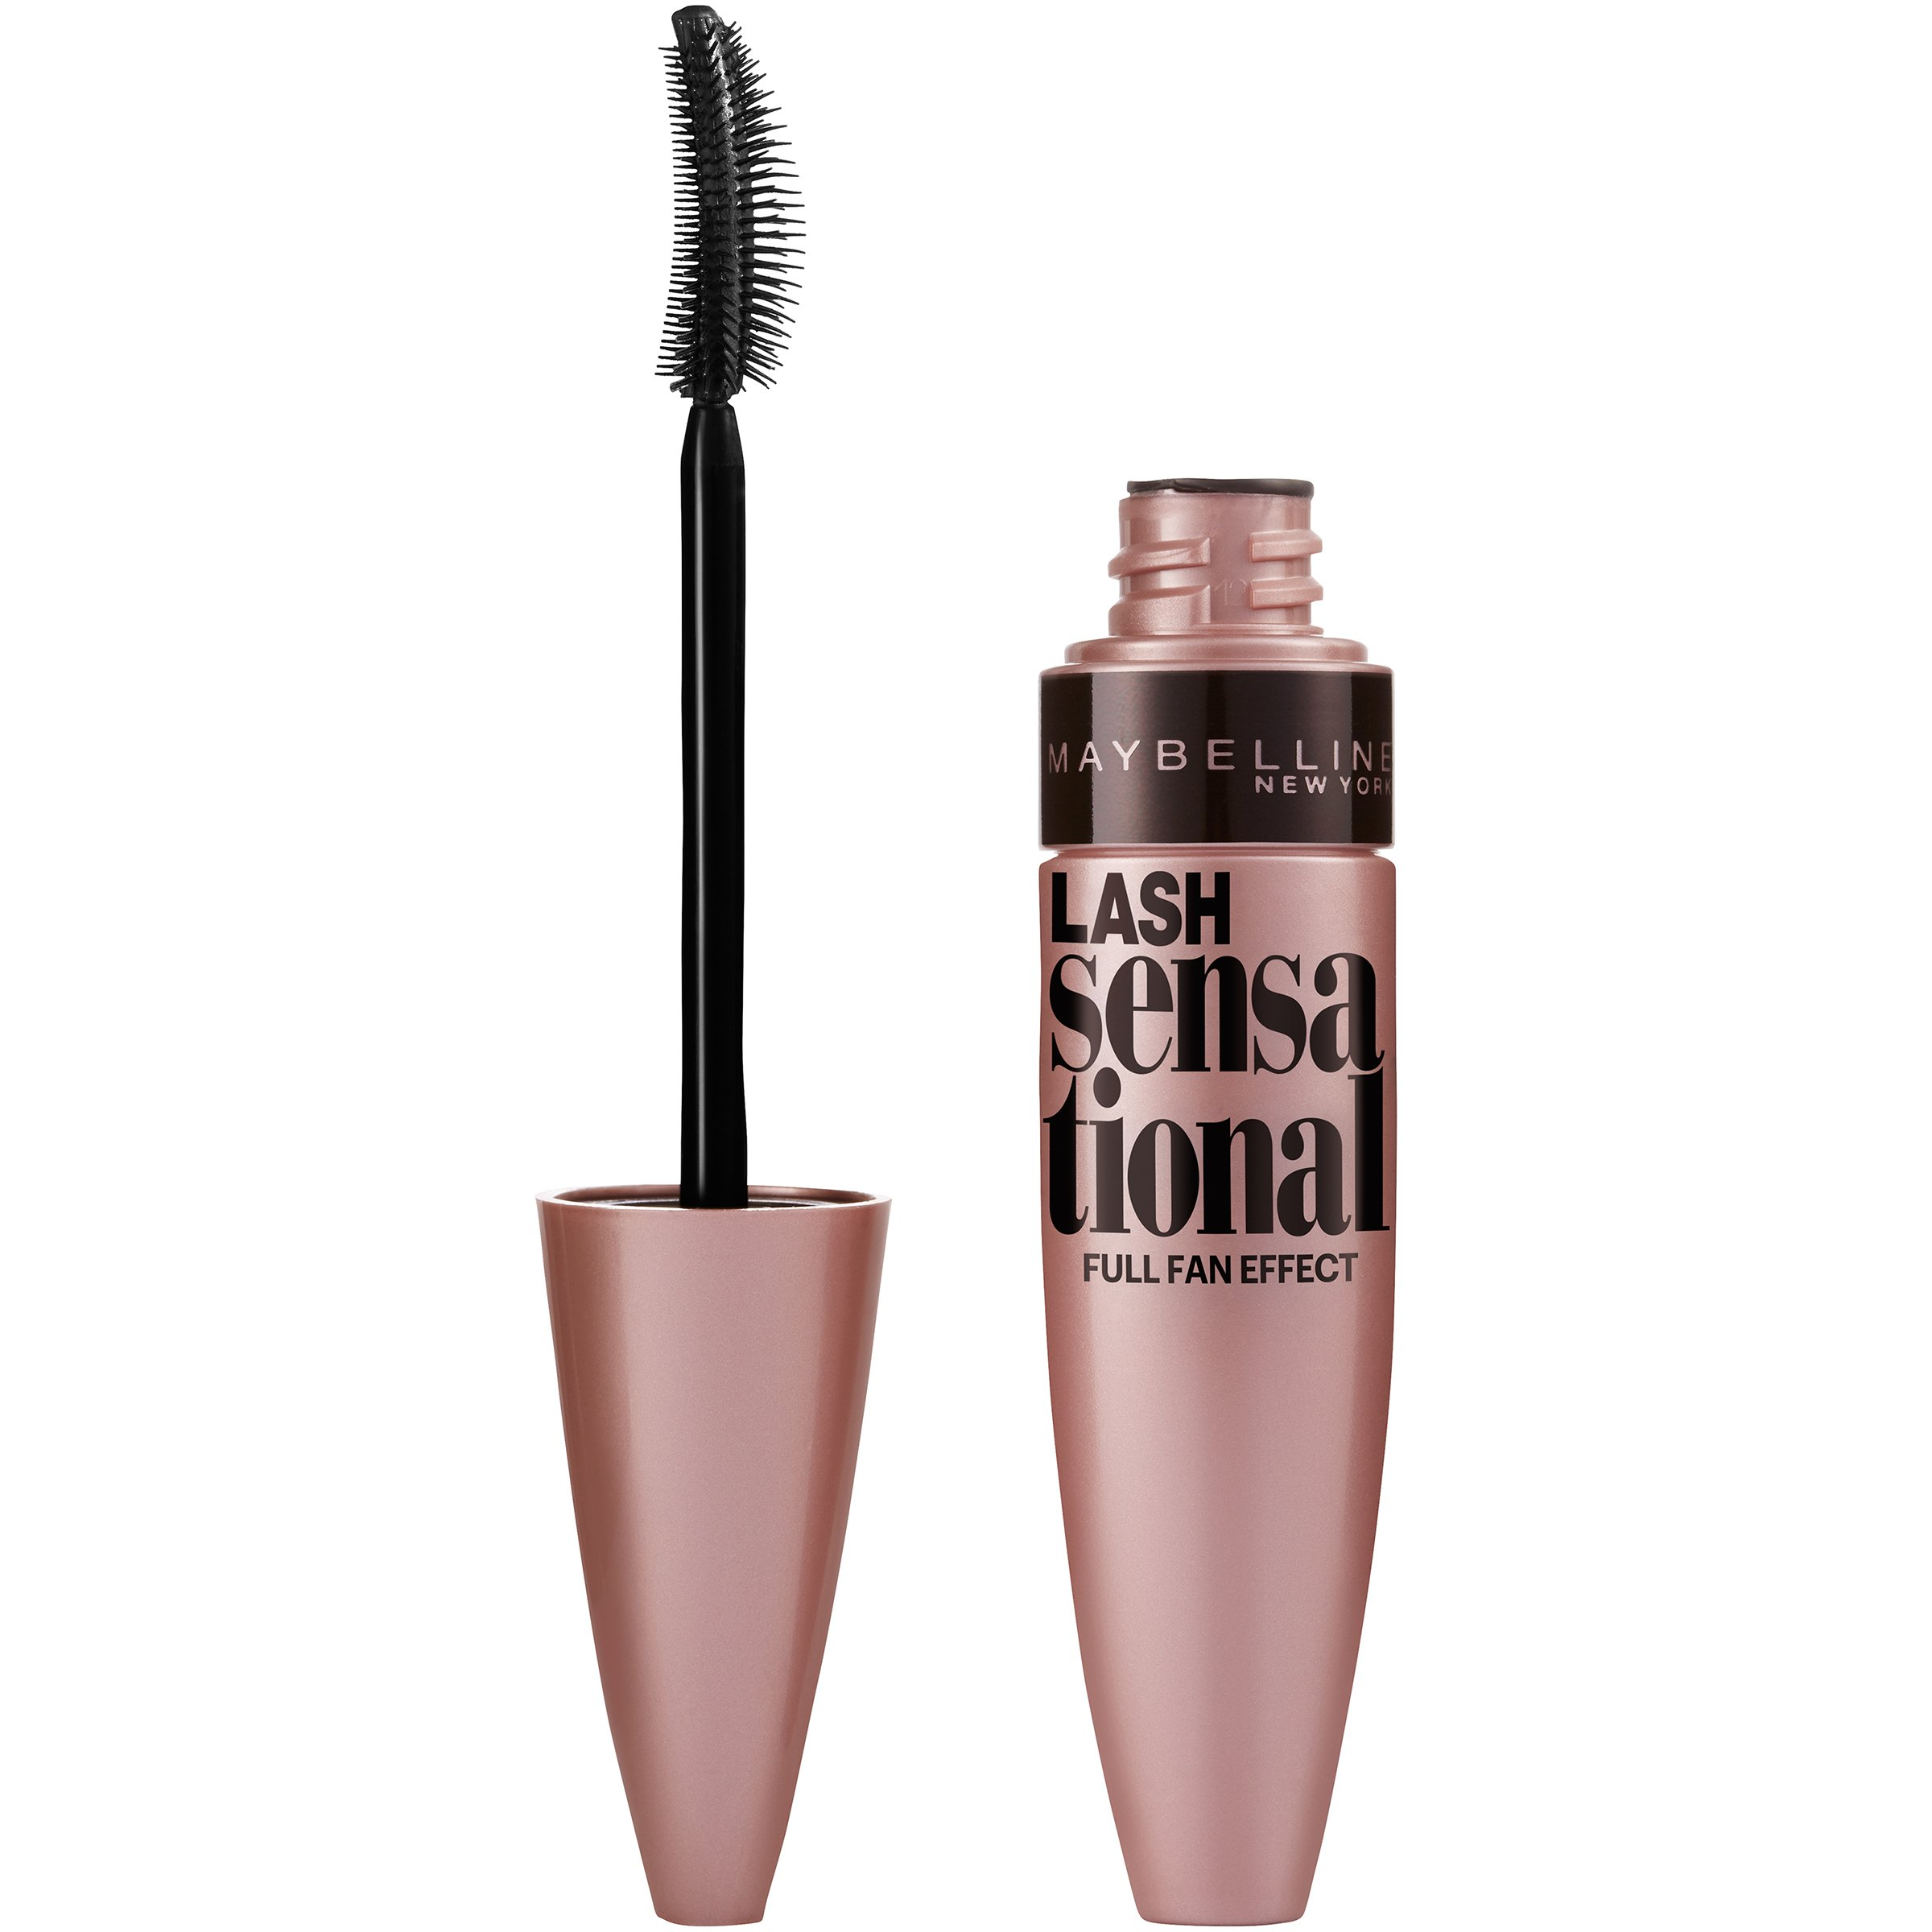 Maybelline New York Lash Sensational Mascara, Blackest Black, 0.32 Fluid Ounce